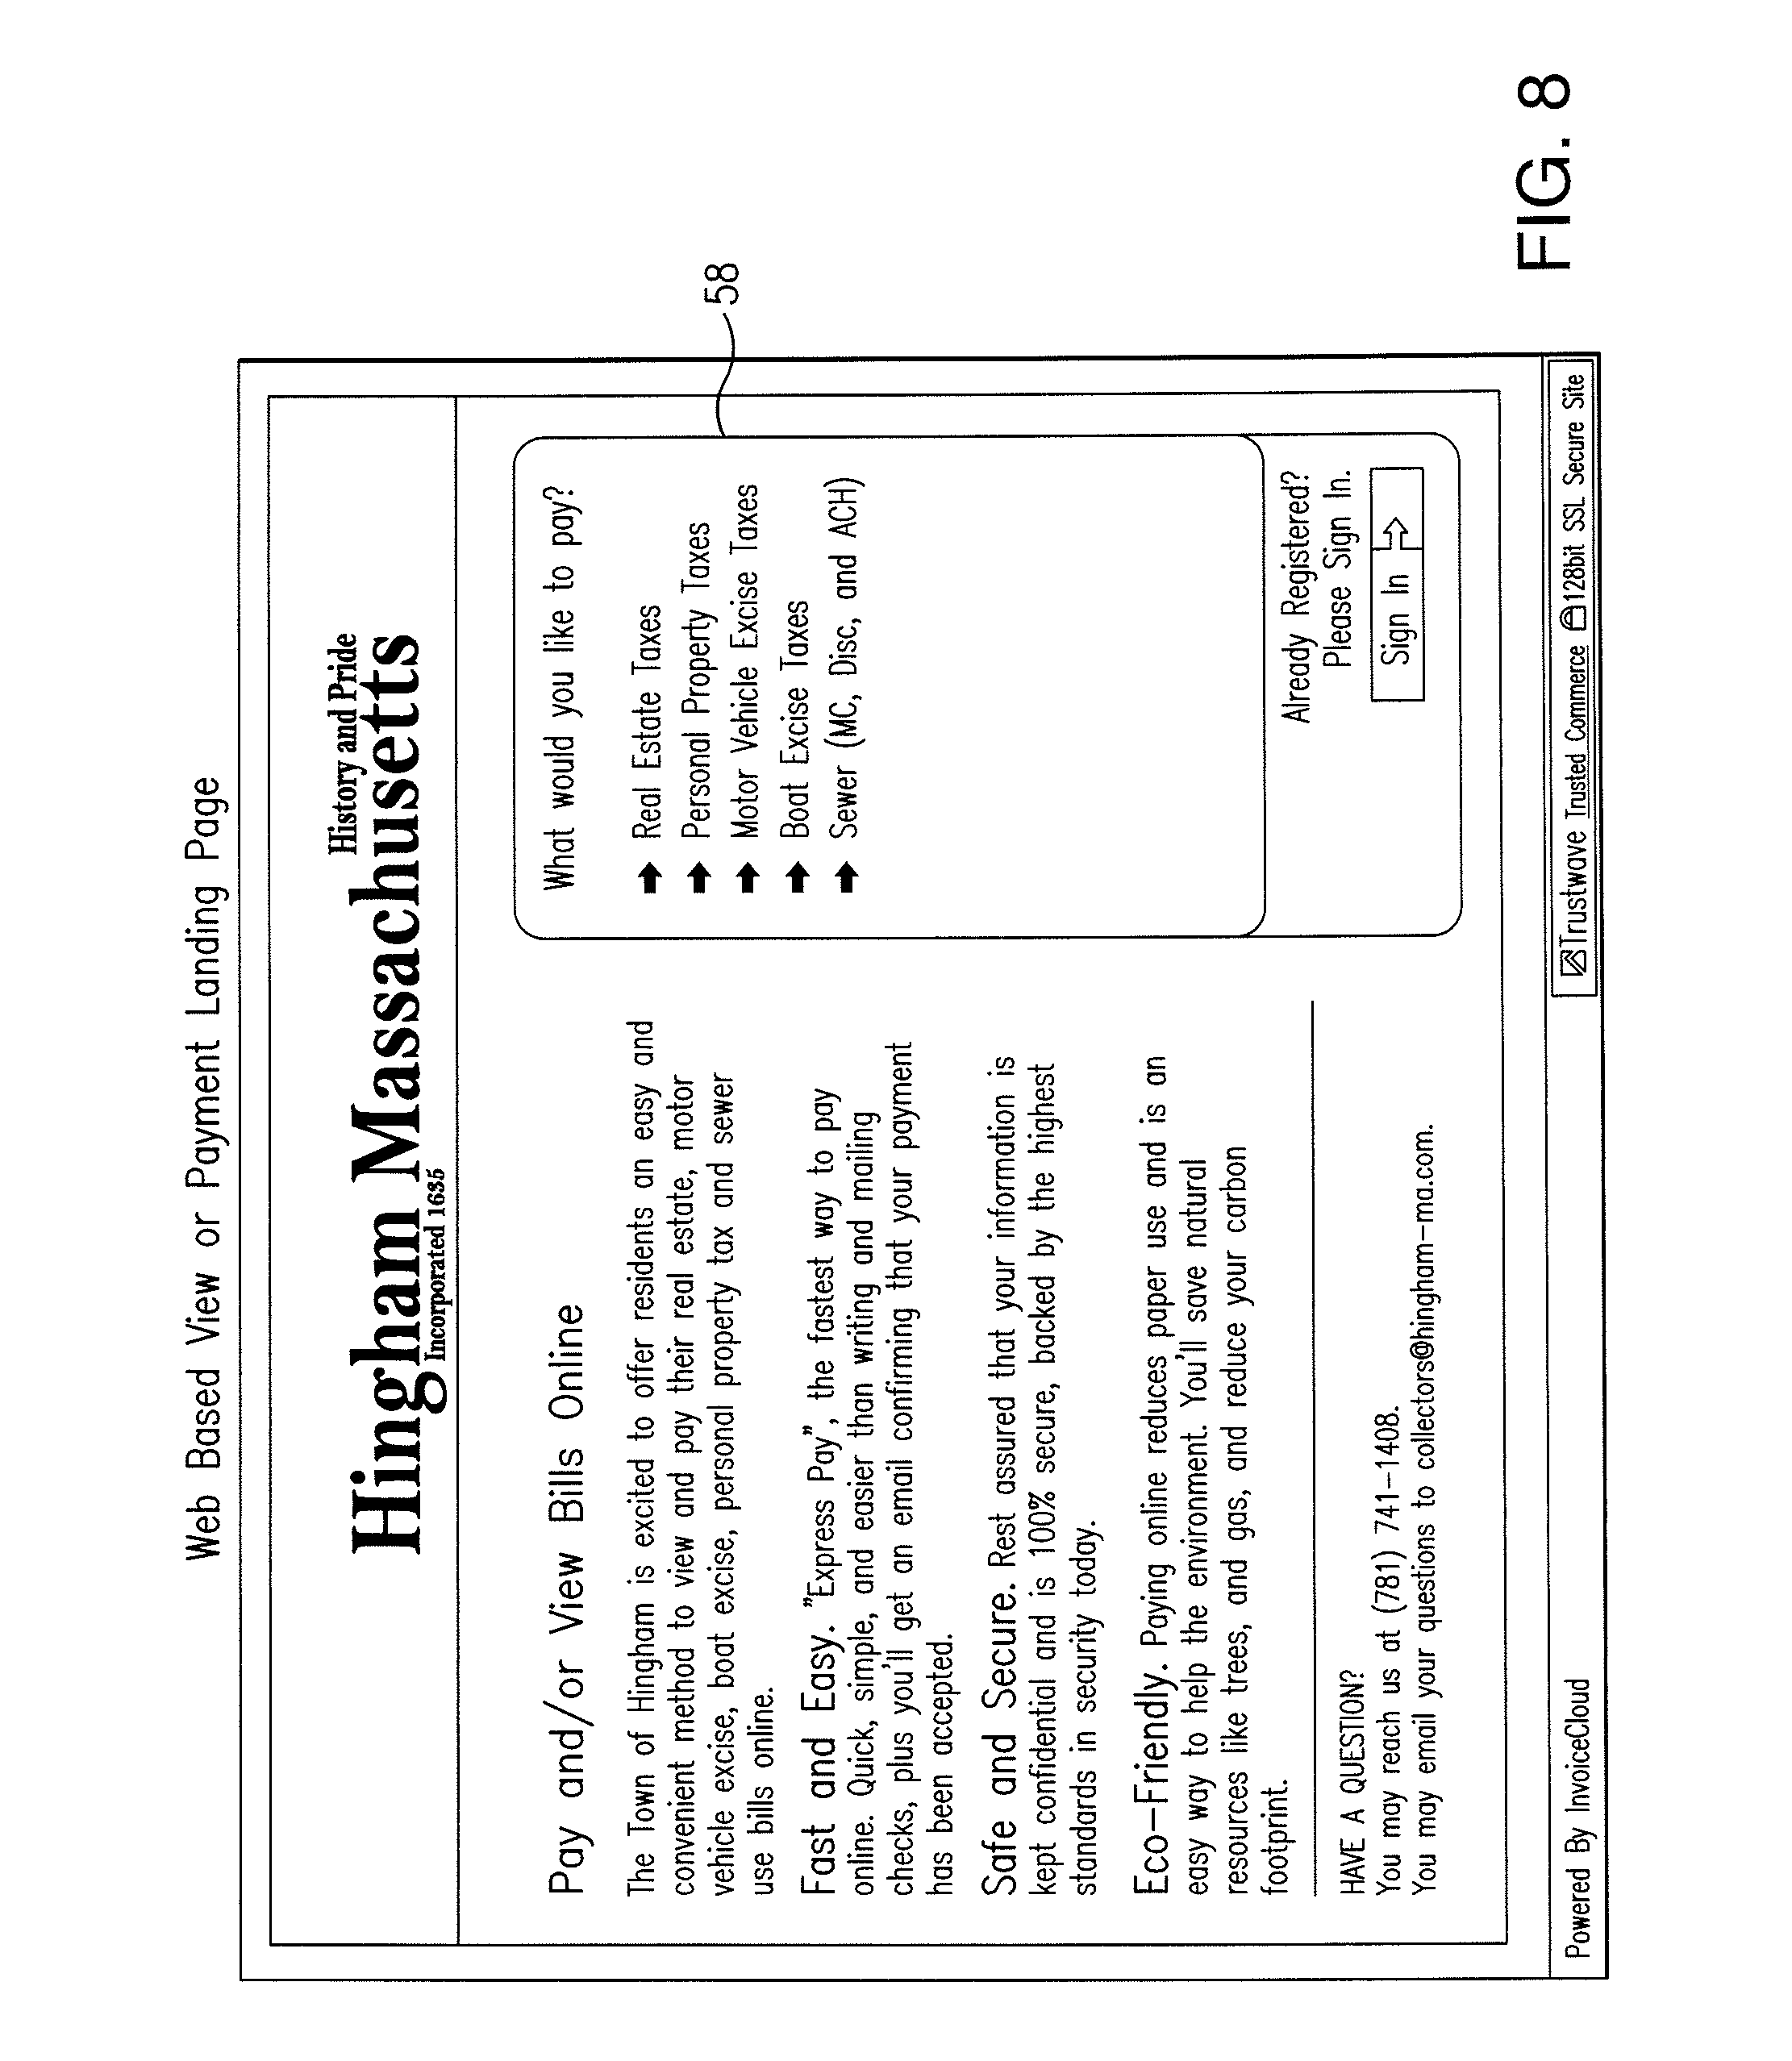 Hertz Car Rental Receipts Patent Us  Electronic Invoice Presentation And Payment  Sales Invoices Excel with Excel Service Invoice Template Patent Drawing Aia Invoice Form Pdf